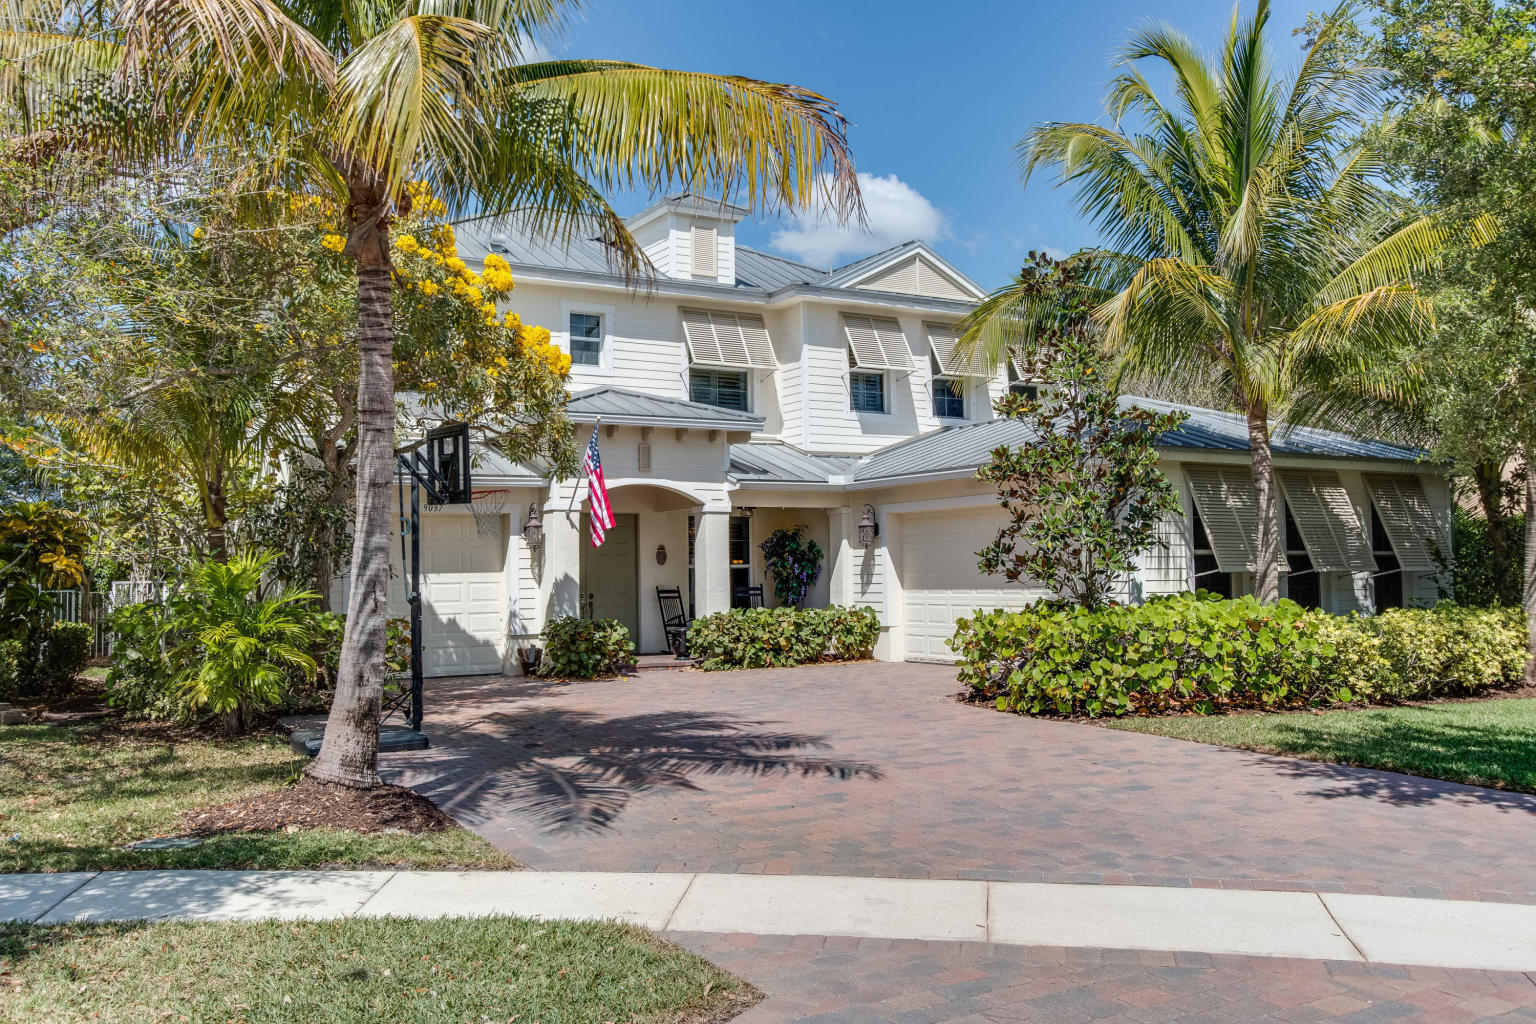 Photo of 9097 New Hope Court, Royal Palm Beach, FL 33411